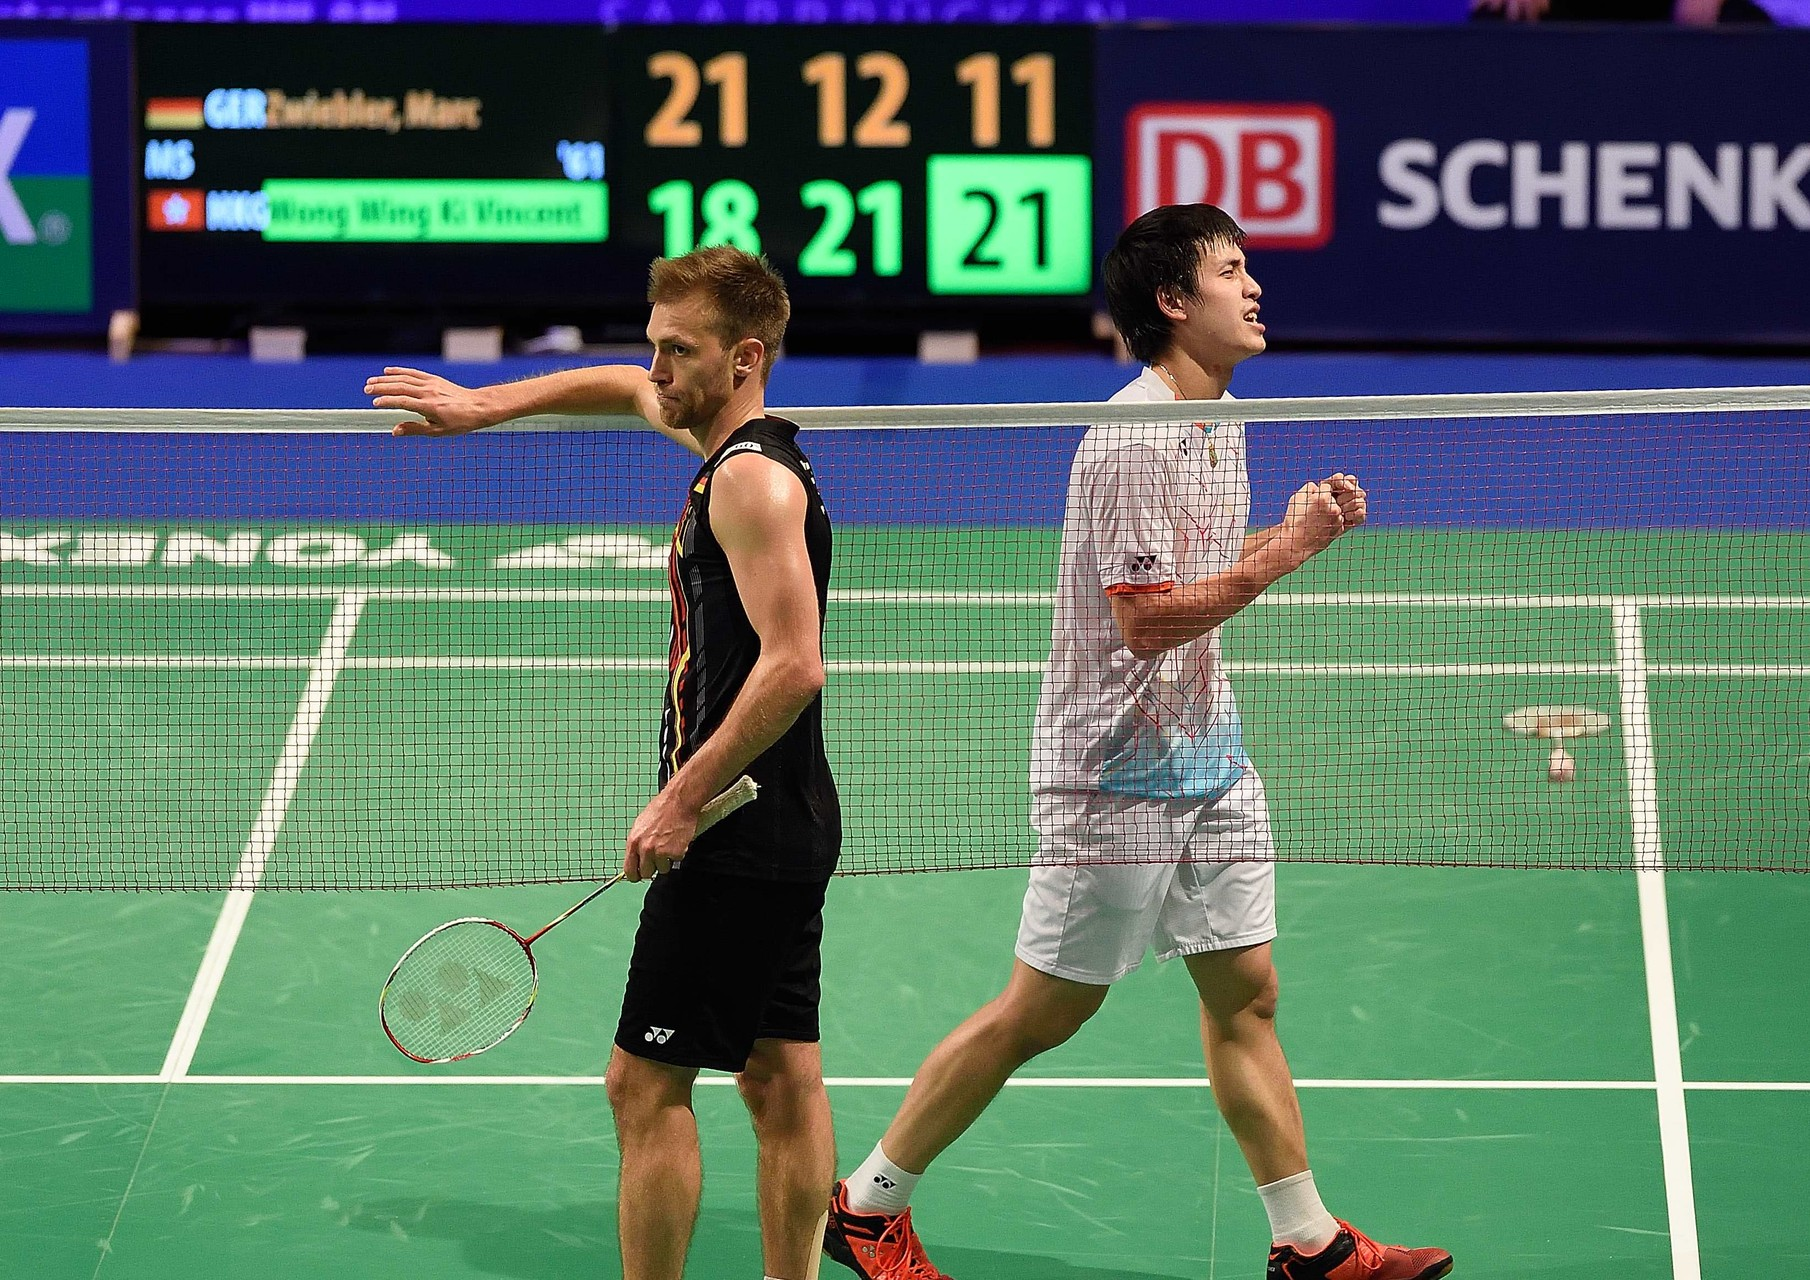 Das waren Bitburger Open 2015 Badminton News hautnah